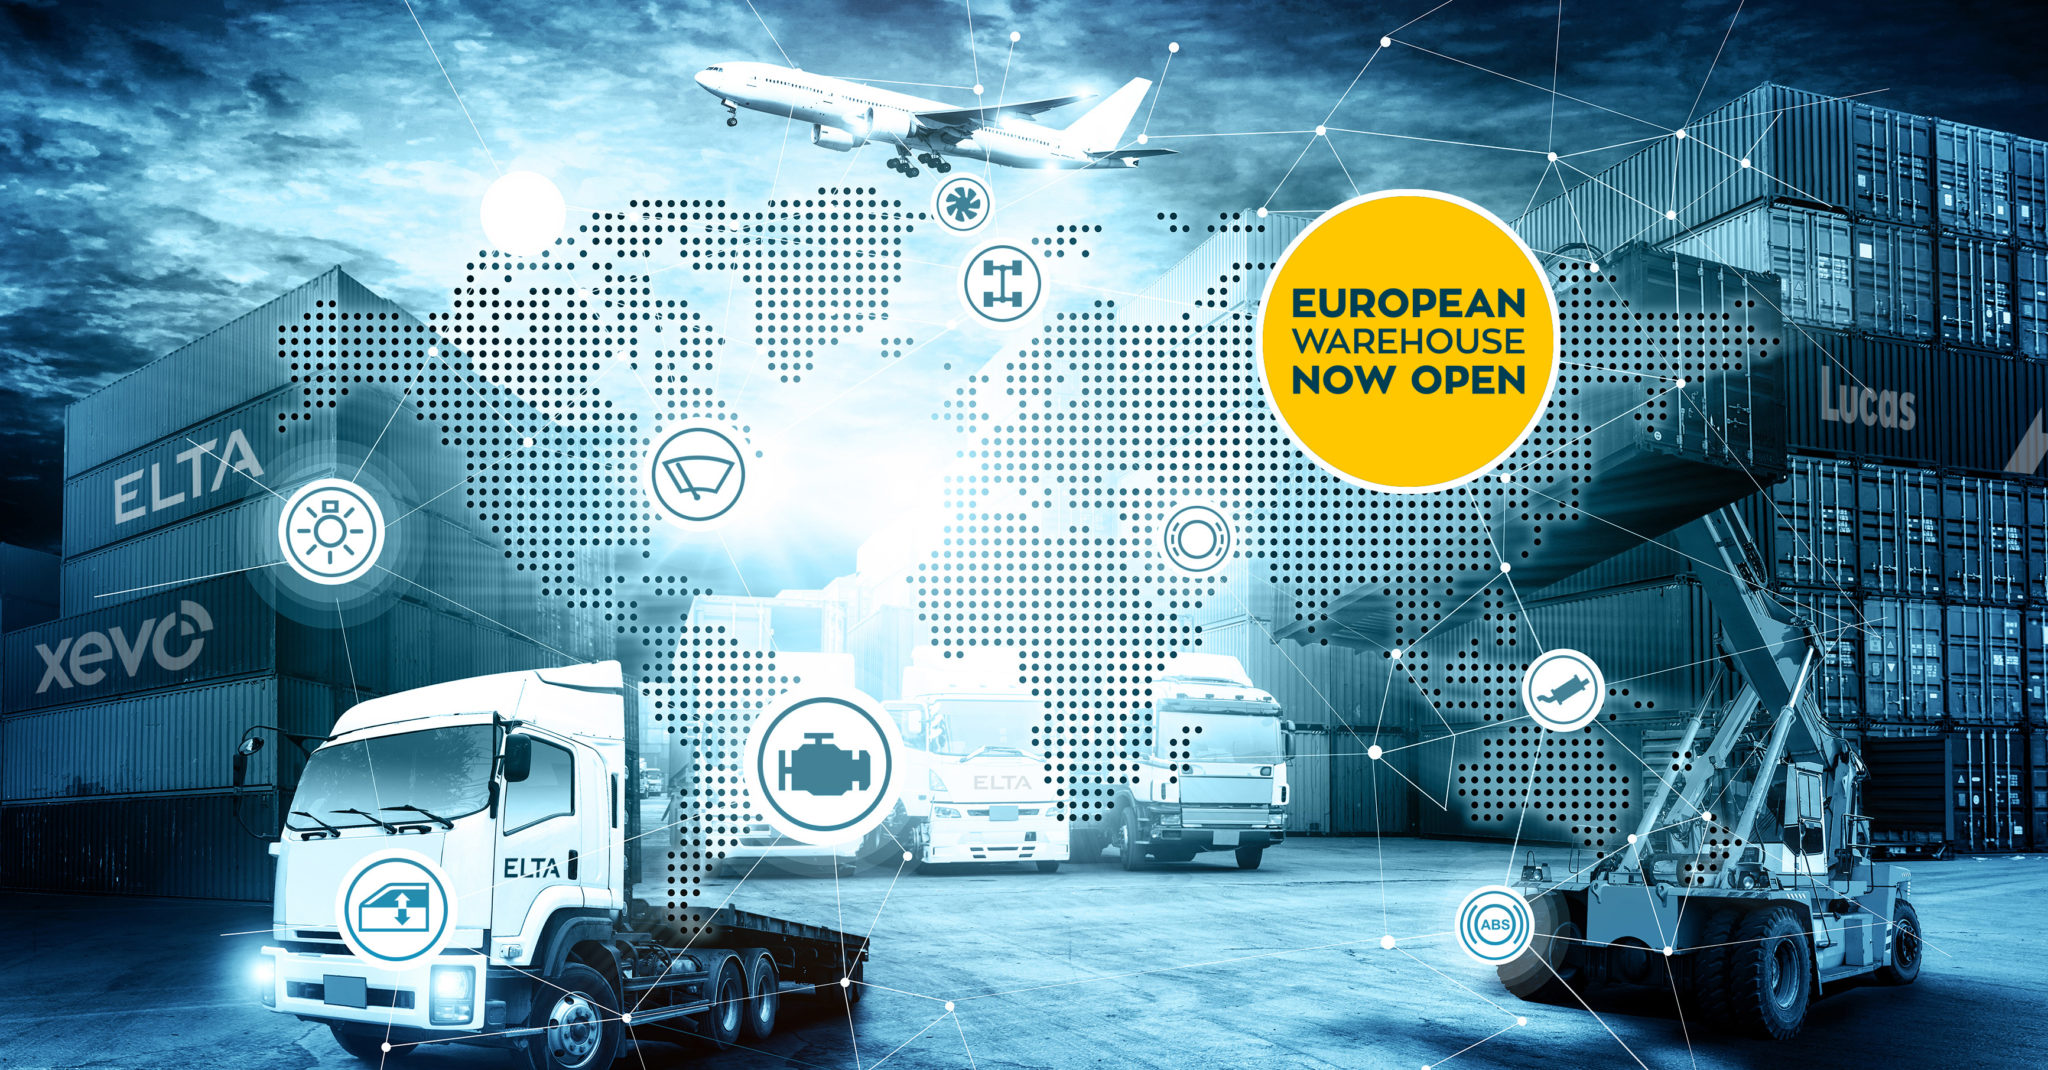 ELTA Europe Warehouse Open